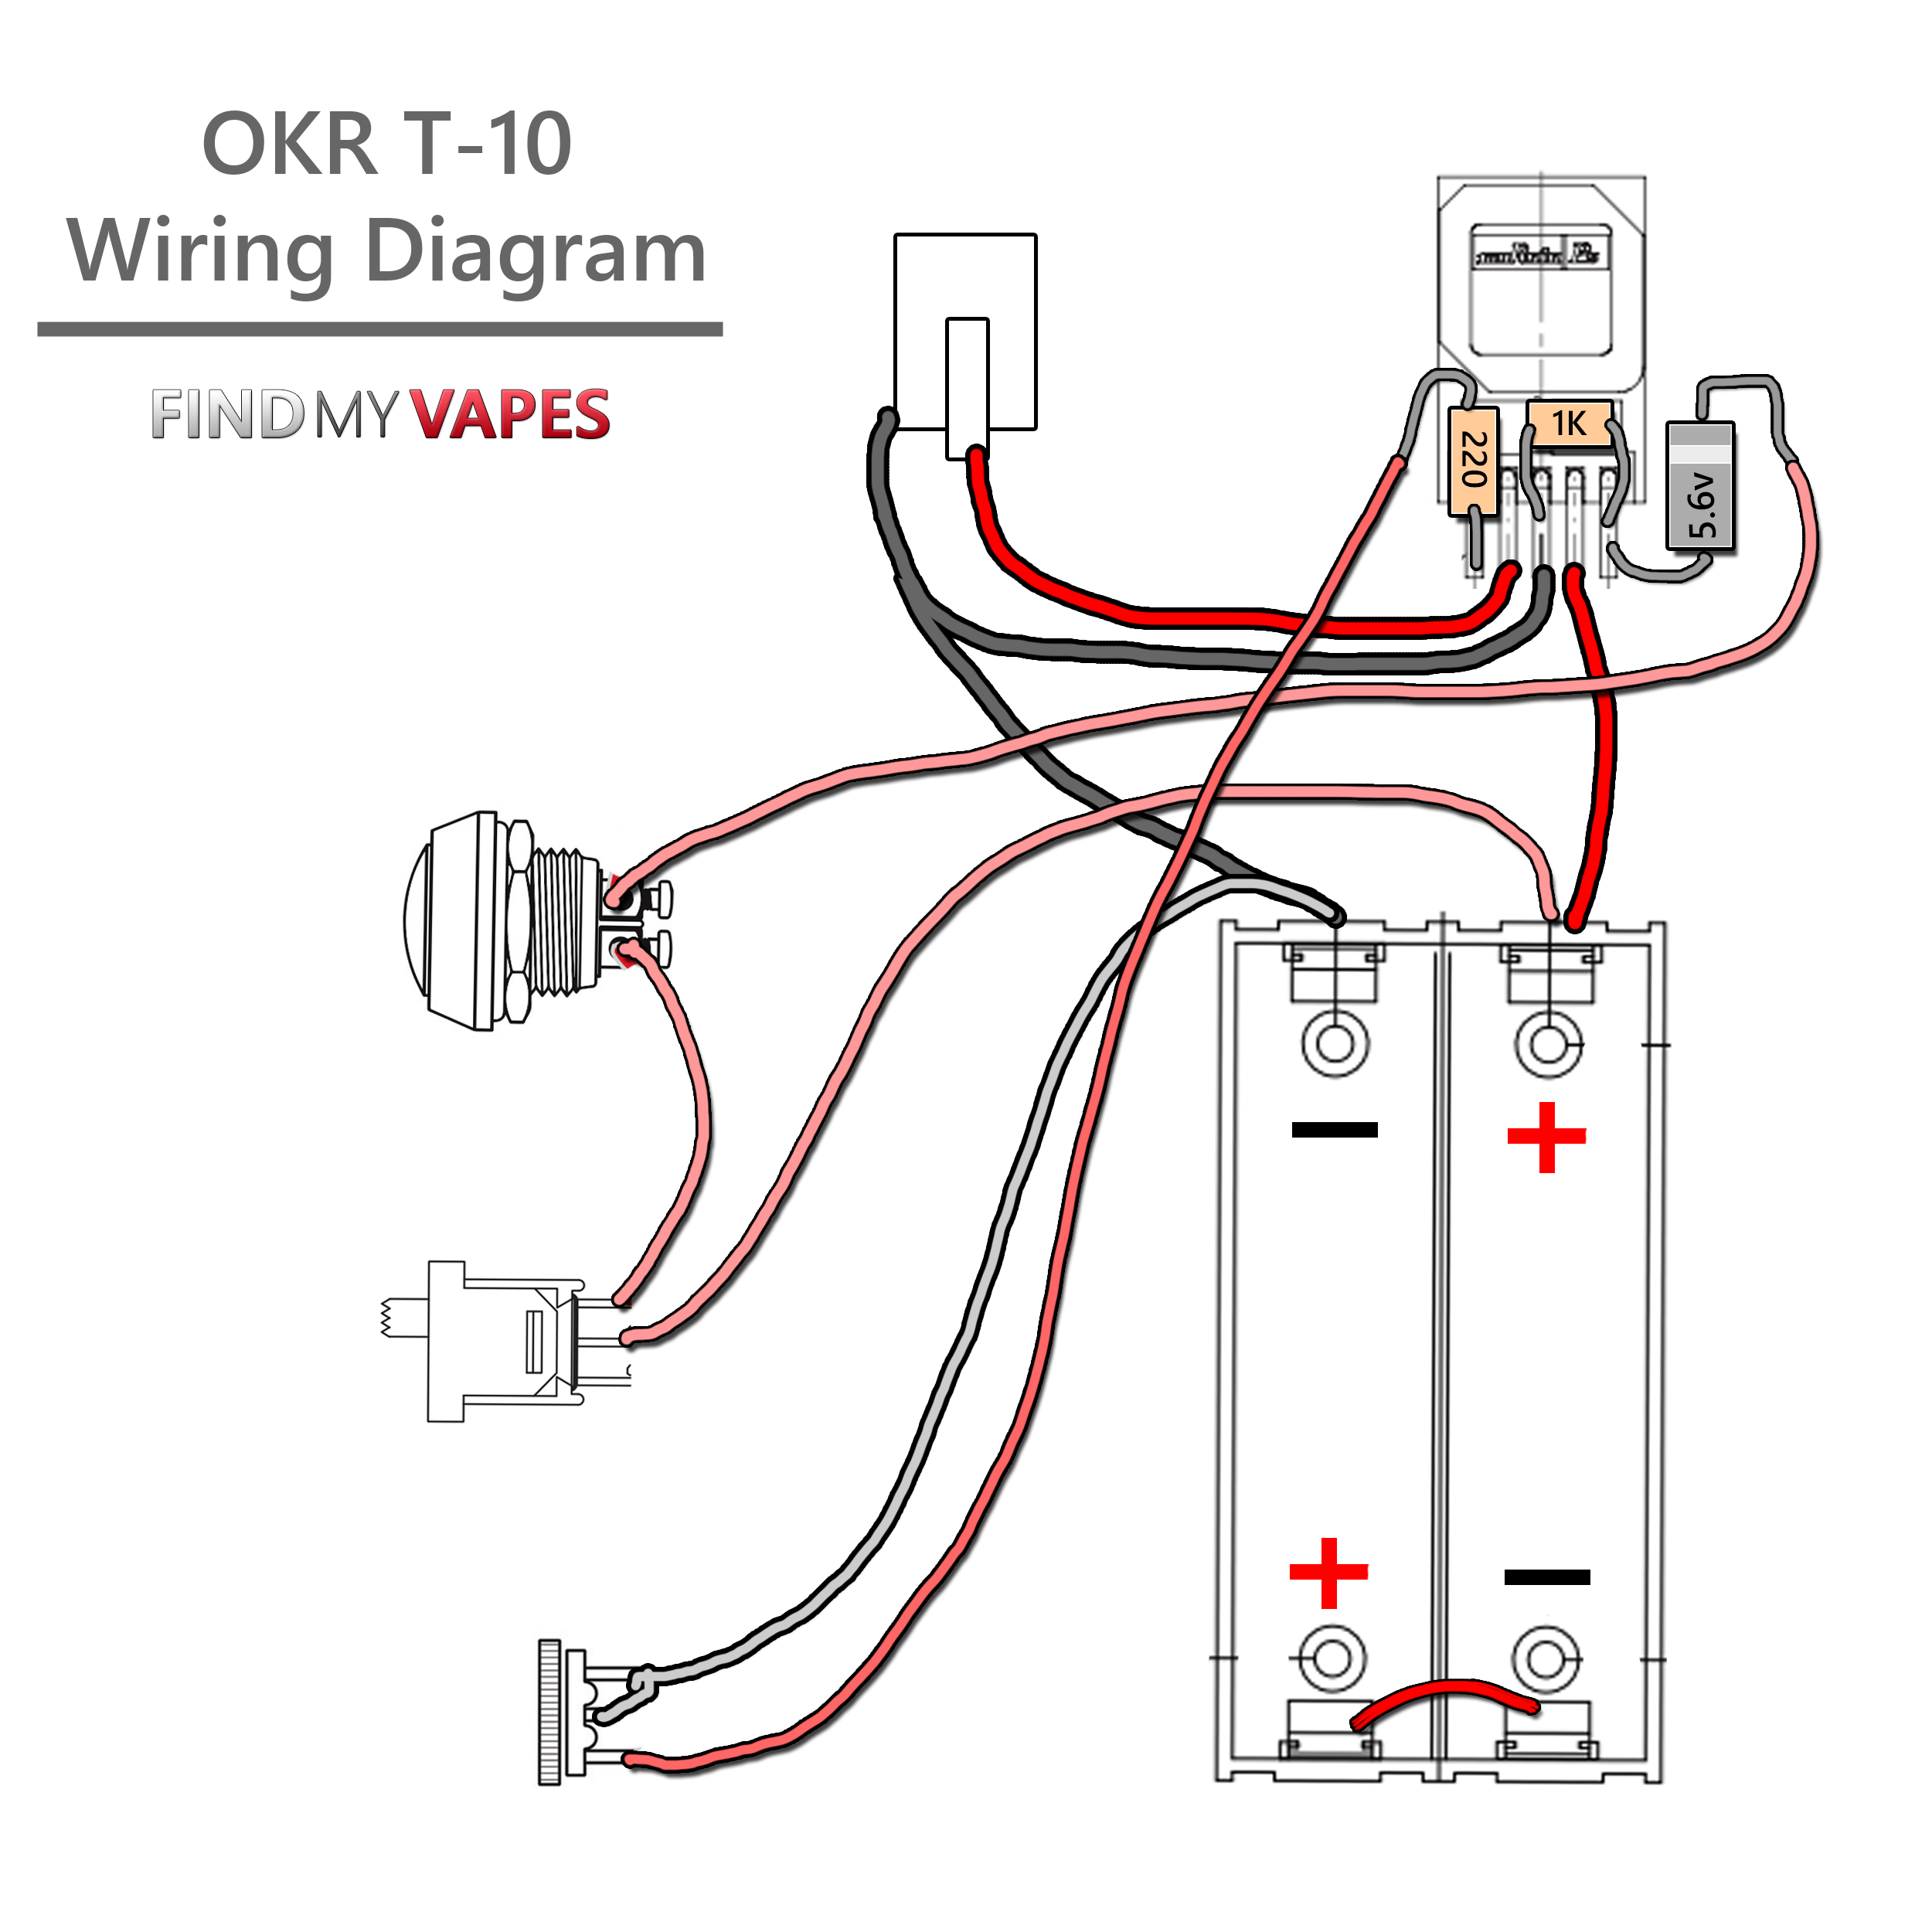 43f1f809f510551e90a2c59cd4315821 findmyvapes com how to build an okr box mod tutorial series box mod wiring diagram at edmiracle.co